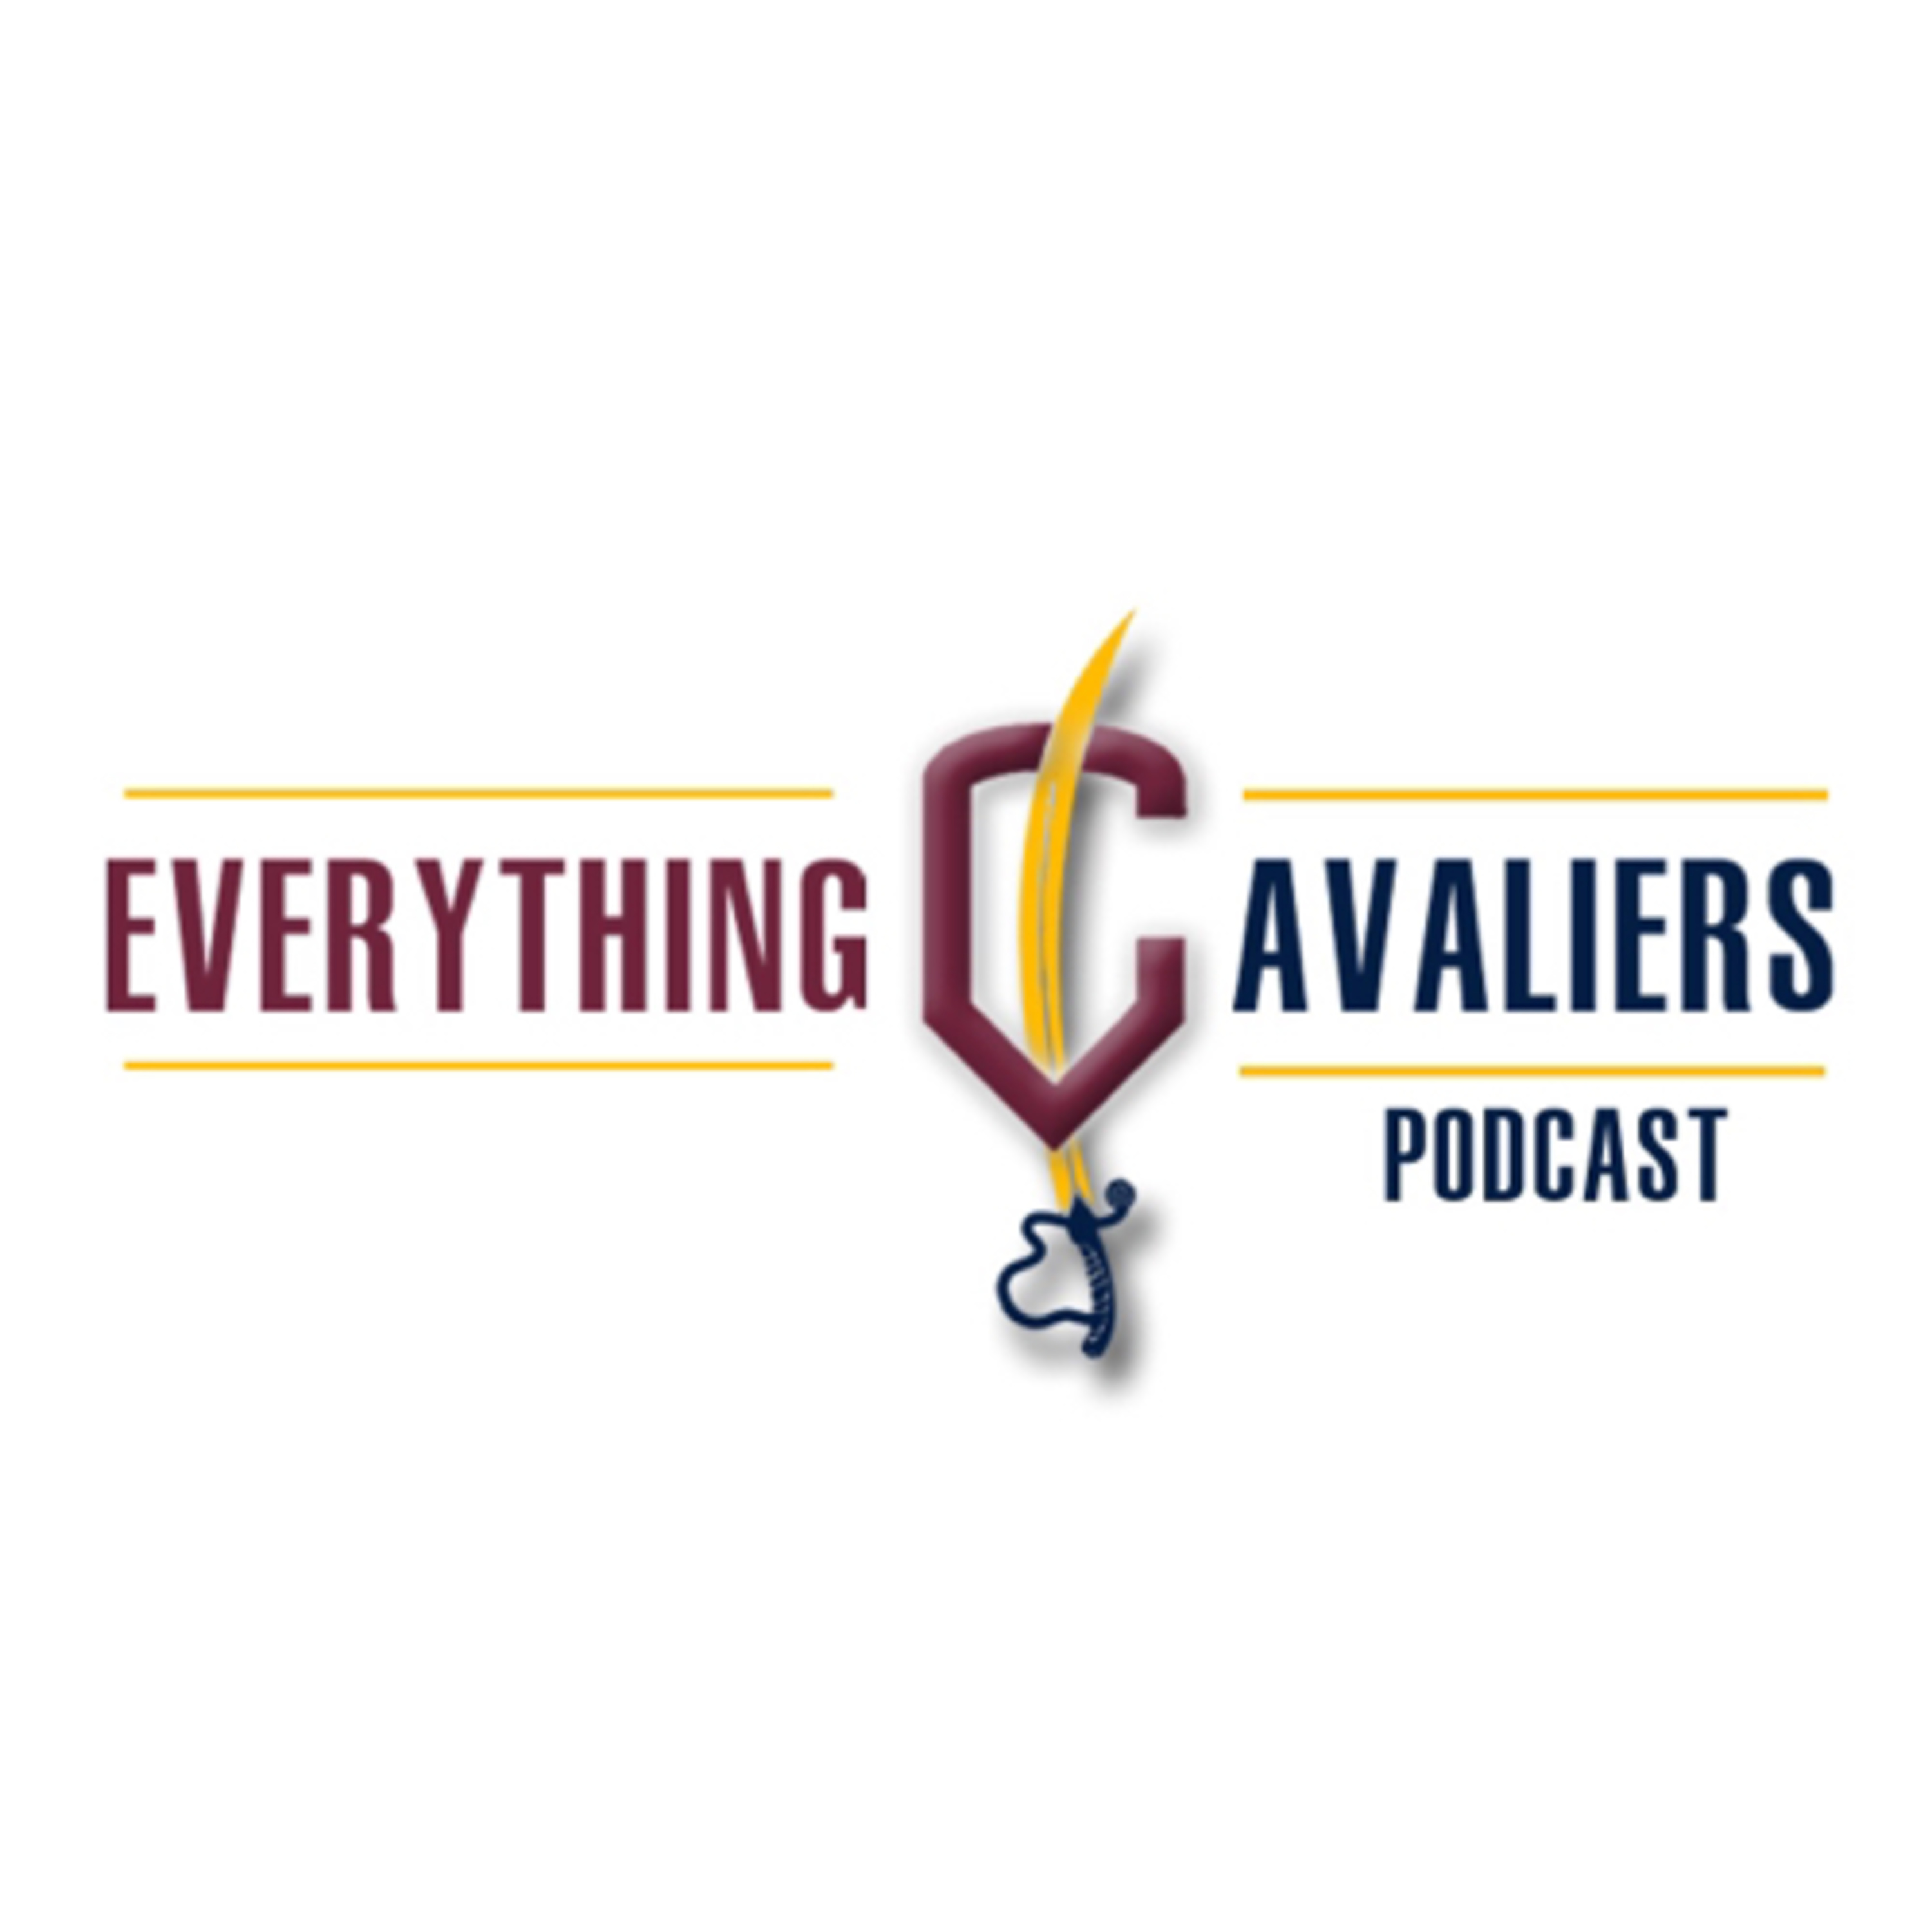 Anthony Edwards: Deep Dive and Does he Make Sense on the Cavs?